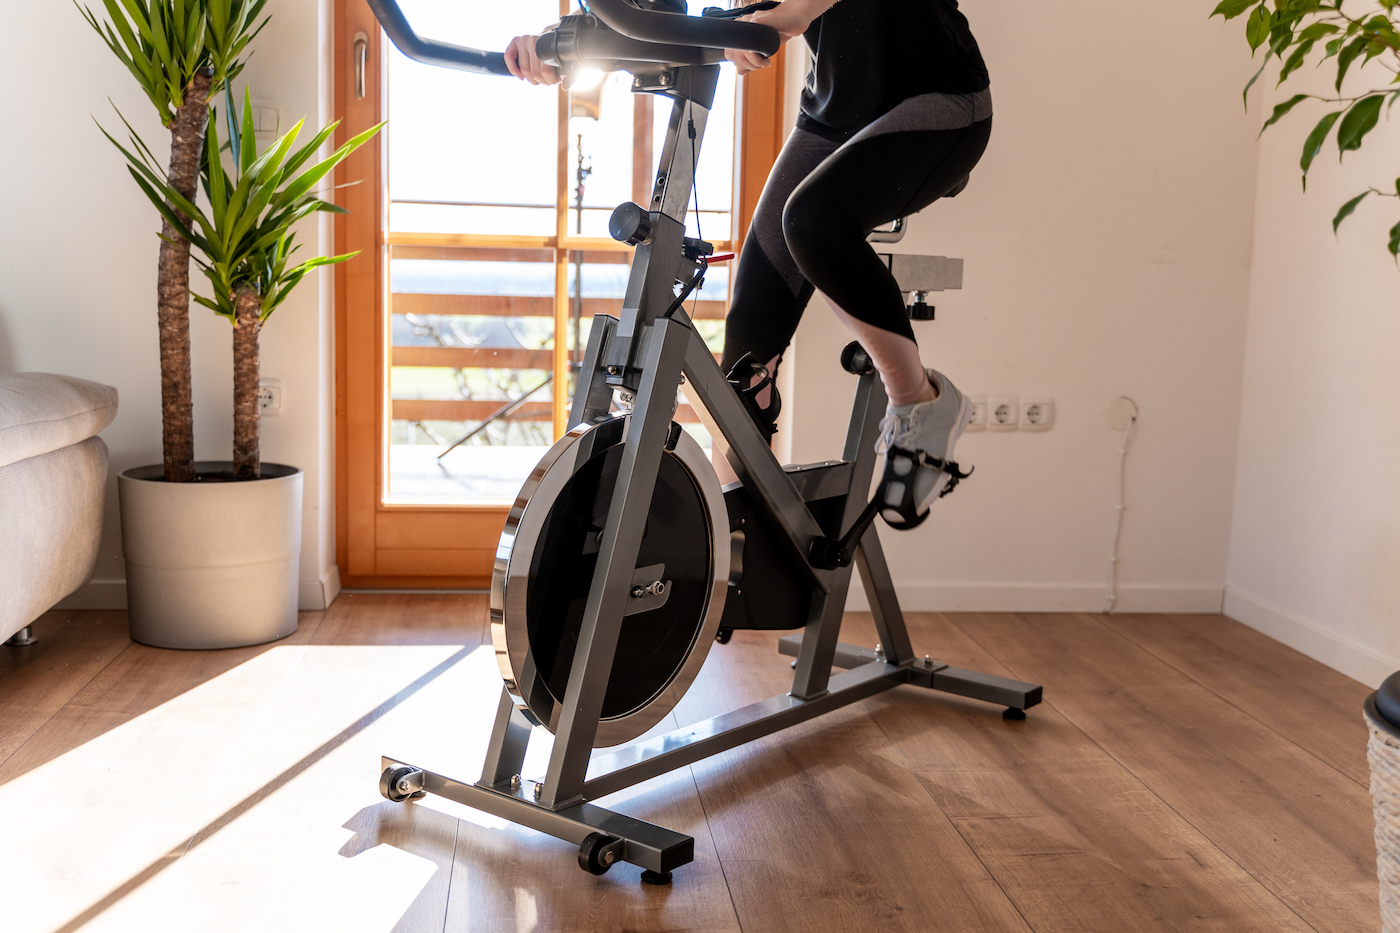 Thumbnail for What Your Spin Instructor Really Means When They Tell You to Push or Pull the Pedals